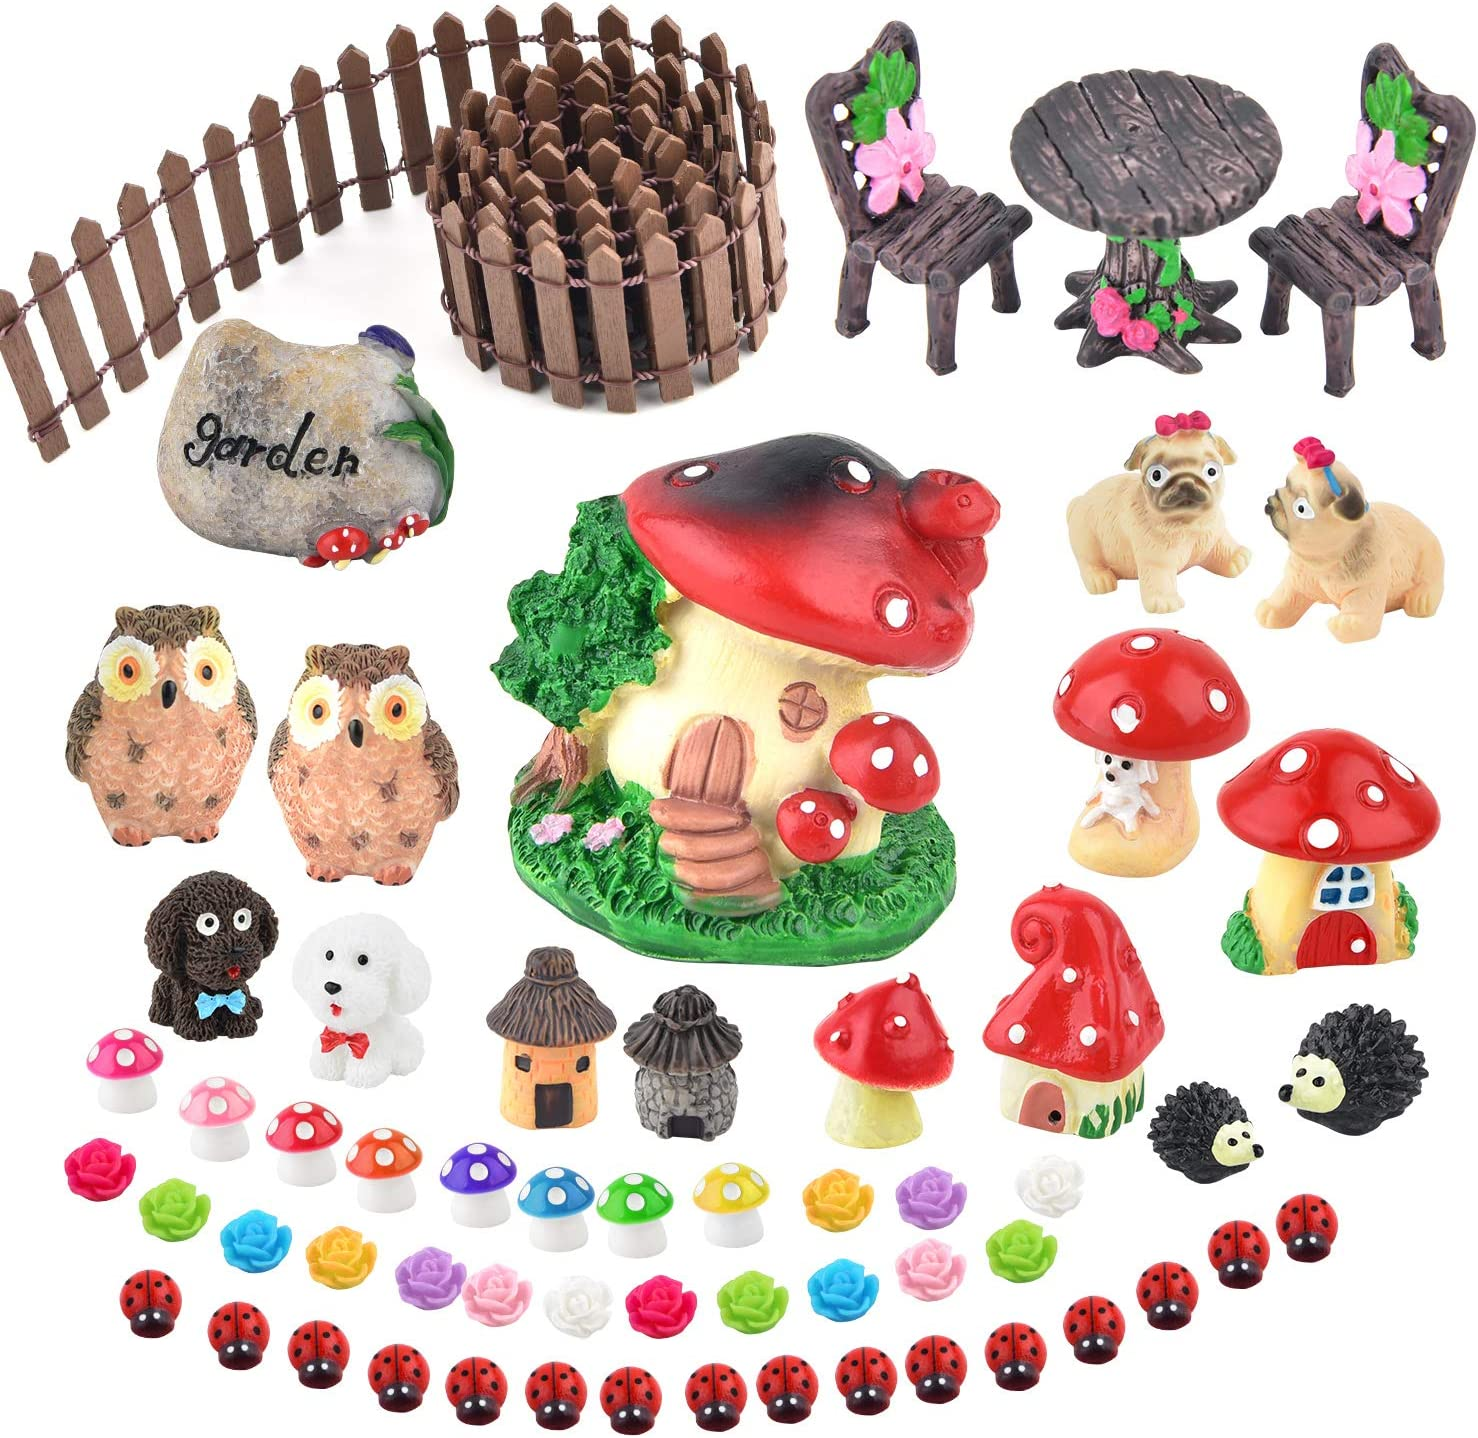 Zealor Miniature Ornaments Kit Fairy Garden Accessories Set Terrarium Kit Miniature Houses and Figurines Garden Decor